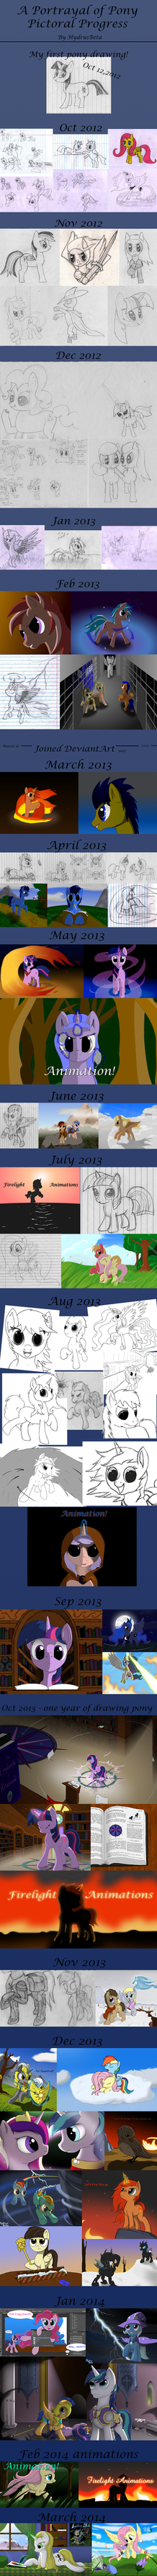 A Portrayal of Pony Pictoral Progress by HydrusBeta